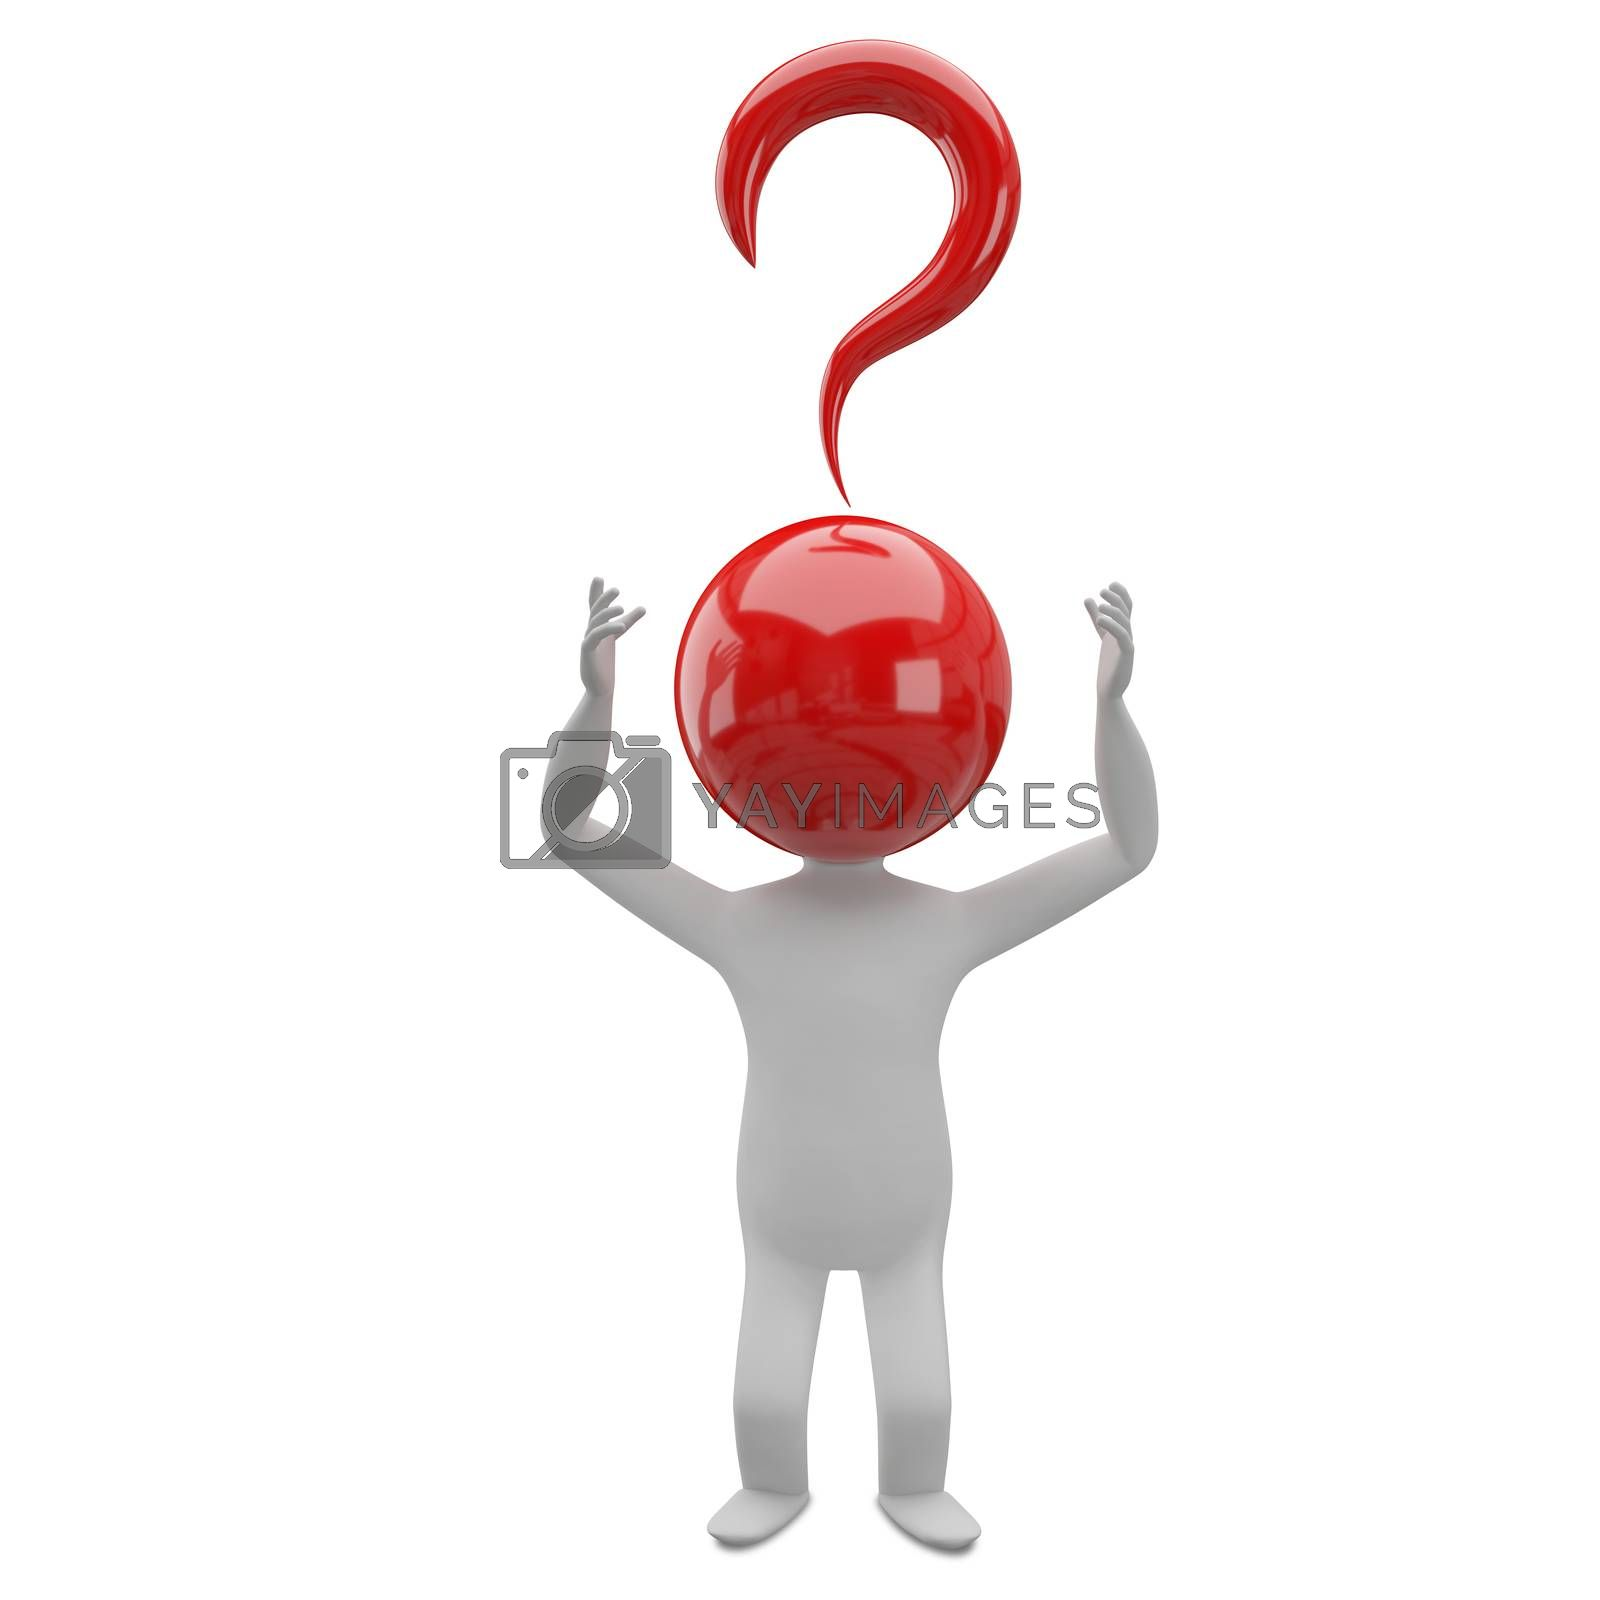 3D Illustration of an Abstract Man with a Head of a Question Mark on a White Background